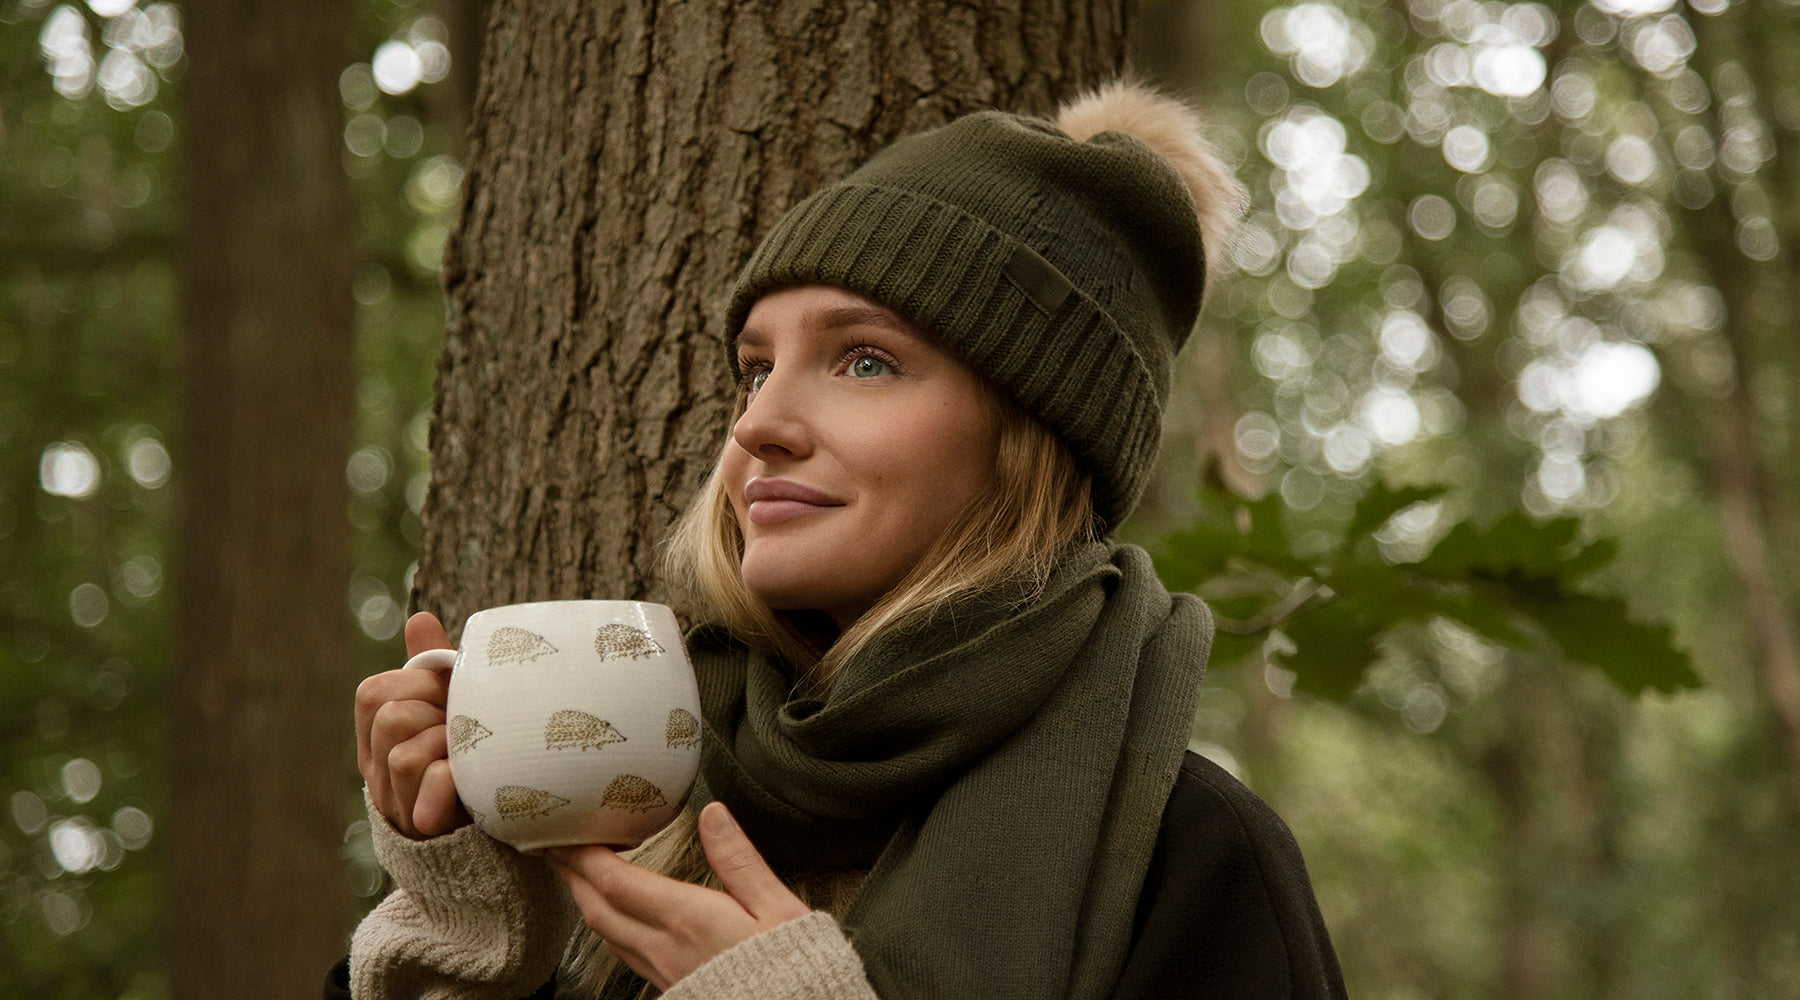 Shop hats & scarves by Sophie Allport